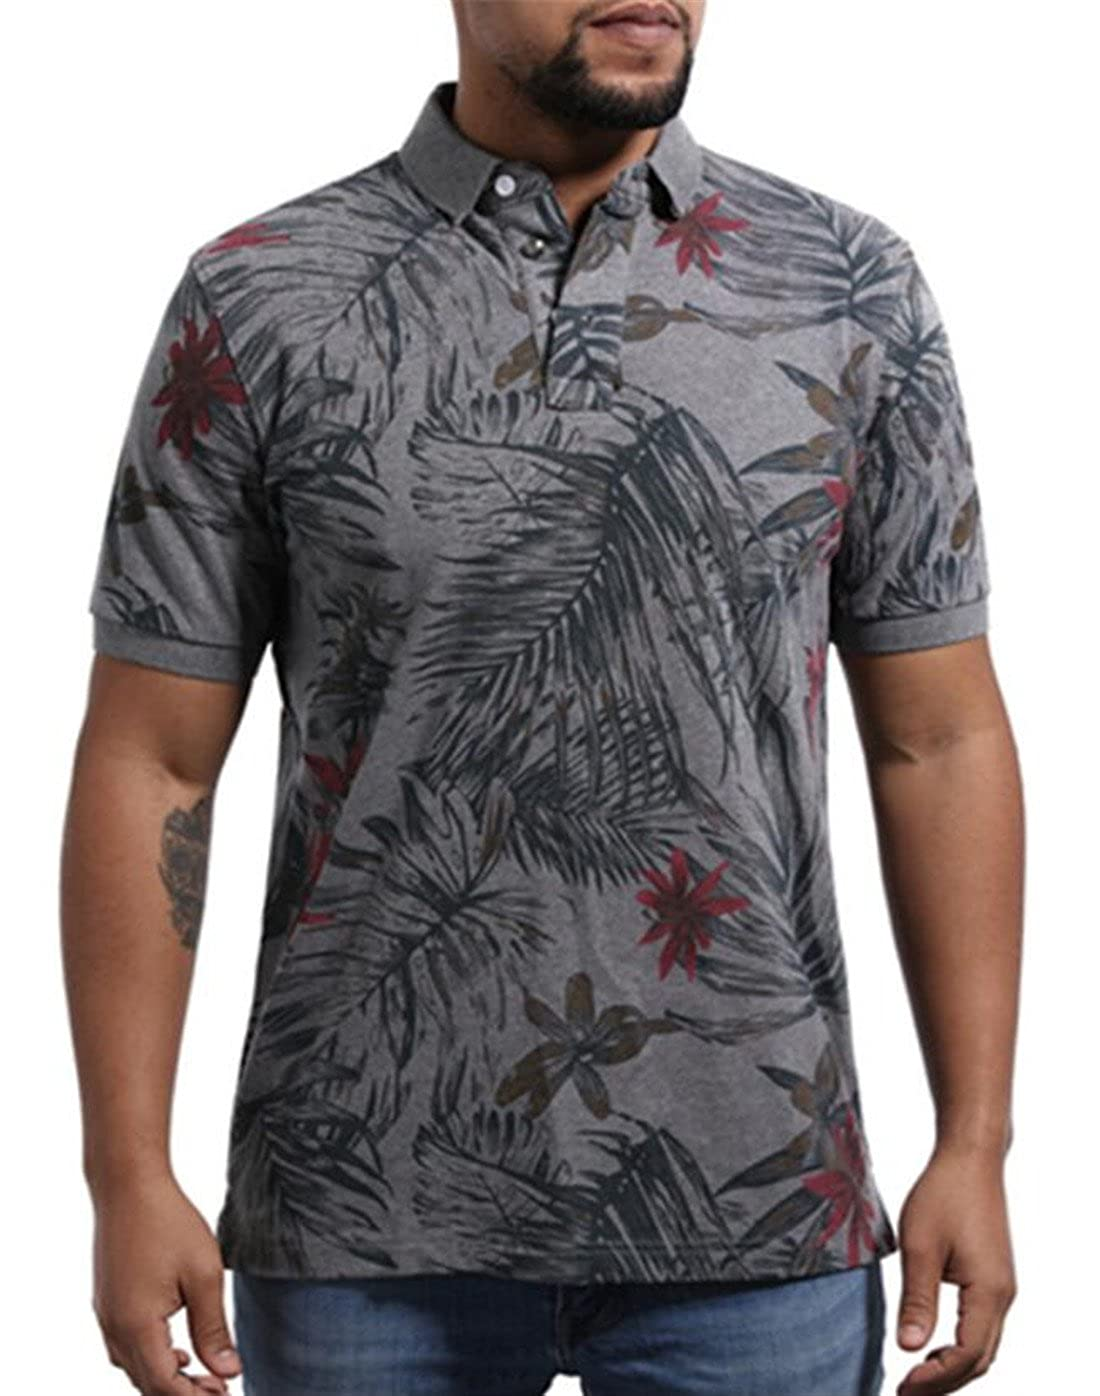 BYWX-Men Classic Fit Floral Short Sleeve Light Weight Polo Shirts